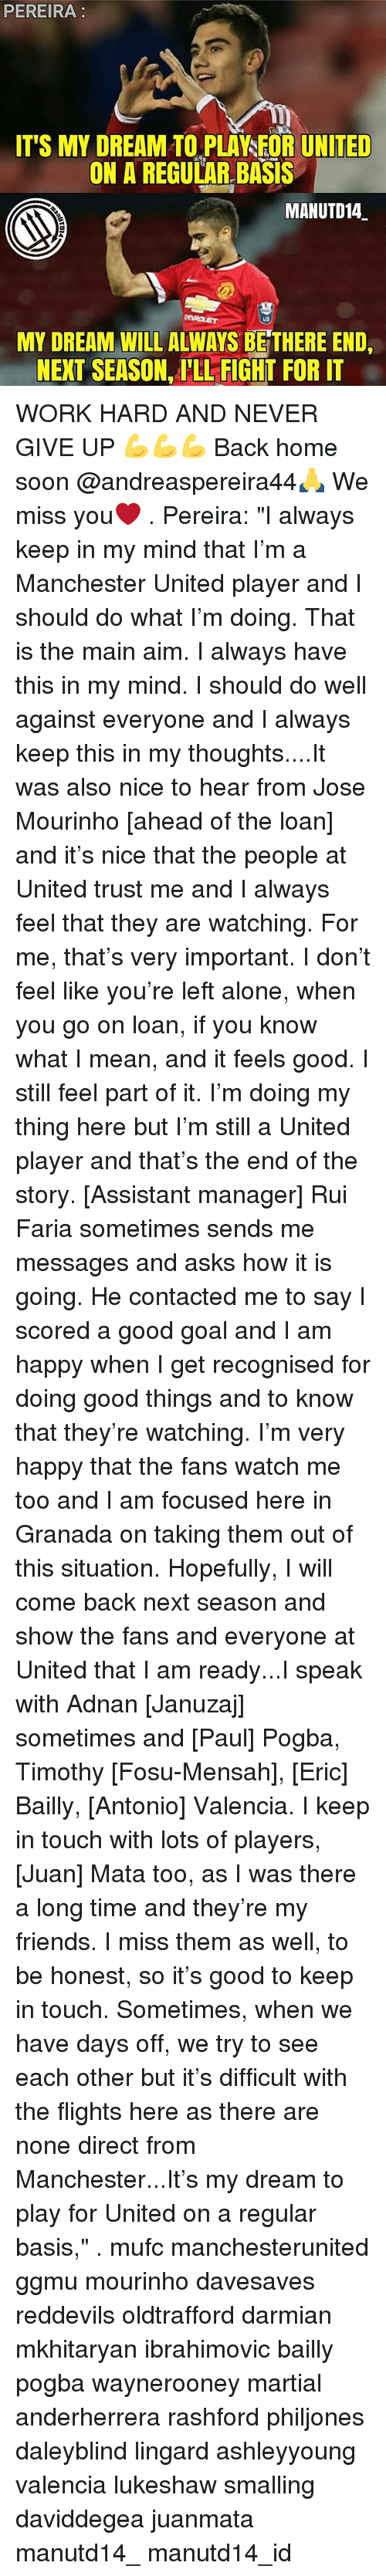 """Being Alone, Friends, and Memes: PEREIRA  ITS MY DREAM TO PLAYSEOR UNITED  ON A REGULAR BASIS  MANUTD14  MY DREAM WILLALWAYS BETHERE END,  NEXT SEASON ILL FIGHT FOR IT WORK HARD AND NEVER GIVE UP 💪💪💪 Back home soon @andreaspereira44🙏 We miss you❤ . Pereira: """"I always keep in my mind that I'm a Manchester United player and I should do what I'm doing. That is the main aim. I always have this in my mind. I should do well against everyone and I always keep this in my thoughts....It was also nice to hear from Jose Mourinho [ahead of the loan] and it's nice that the people at United trust me and I always feel that they are watching. For me, that's very important. I don't feel like you're left alone, when you go on loan, if you know what I mean, and it feels good. I still feel part of it. I'm doing my thing here but I'm still a United player and that's the end of the story. [Assistant manager] Rui Faria sometimes sends me messages and asks how it is going. He contacted me to say I scored a good goal and I am happy when I get recognised for doing good things and to know that they're watching. I'm very happy that the fans watch me too and I am focused here in Granada on taking them out of this situation. Hopefully, I will come back next season and show the fans and everyone at United that I am ready...I speak with Adnan [Januzaj] sometimes and [Paul] Pogba, Timothy [Fosu-Mensah], [Eric] Bailly, [Antonio] Valencia. I keep in touch with lots of players, [Juan] Mata too, as I was there a long time and they're my friends. I miss them as well, to be honest, so it's good to keep in touch. Sometimes, when we have days off, we try to see each other but it's difficult with the flights here as there are none direct from Manchester...It's my dream to play for United on a regular basis,"""" . mufc manchesterunited ggmu mourinho davesaves reddevils oldtrafford darmian mkhitaryan ibrahimovic bailly pogba waynerooney martial anderherrera rashford philjones daleyblind lingard ashleyyoung valen"""